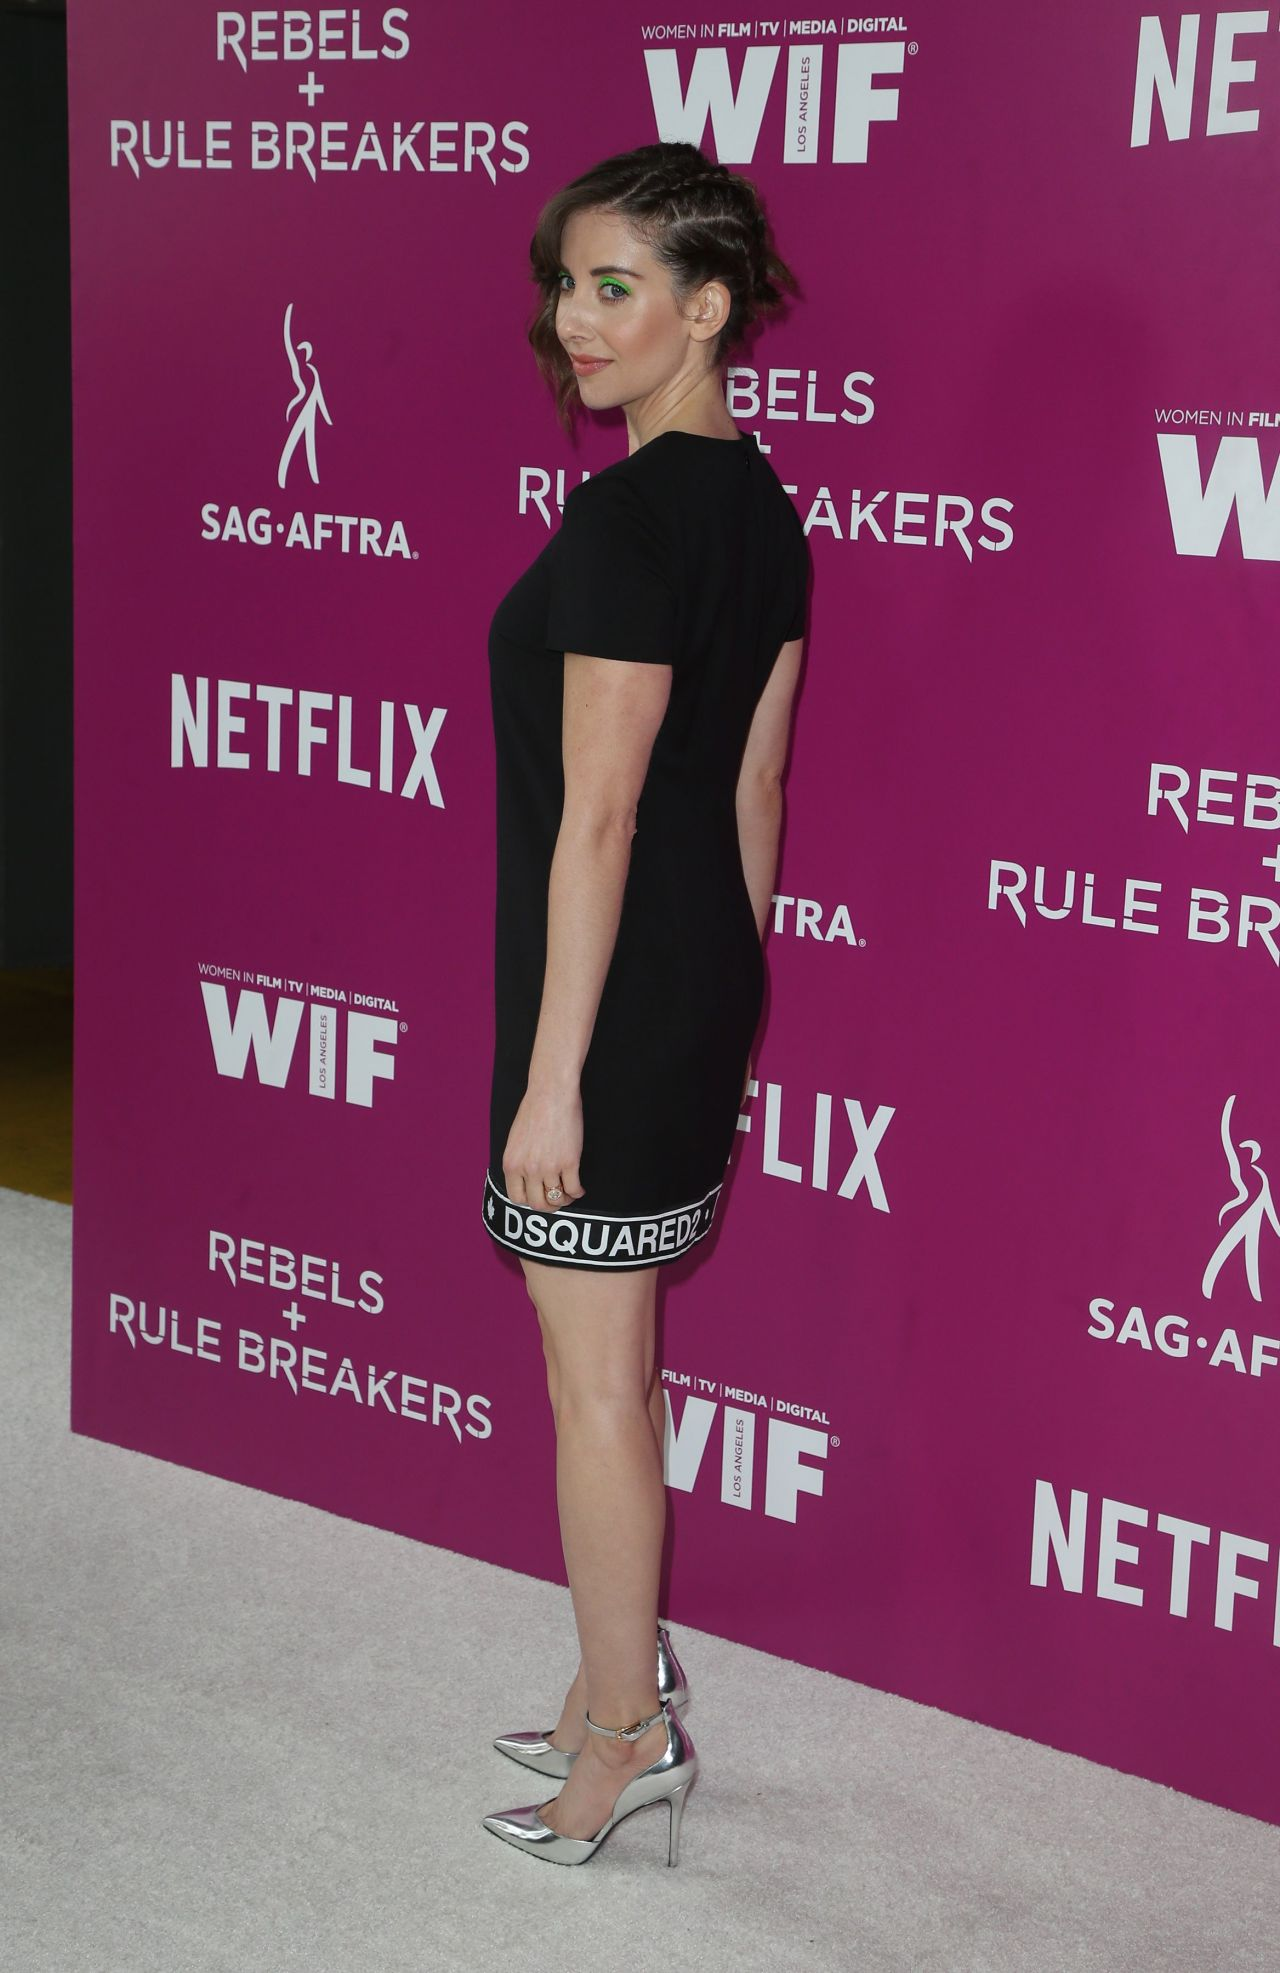 http://celebmafia.com/wp-content/uploads/2018/05/alison-brie-rebels-and-rule-breakers-fyc-event-in-la-2.jpg